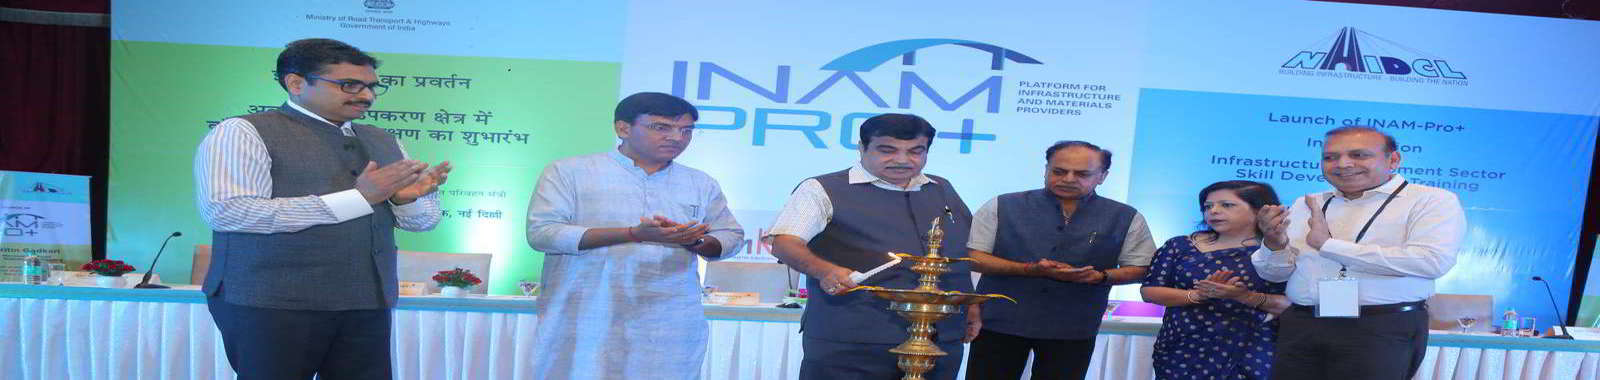 Launching-Of-INAM-Pro-01062017-1